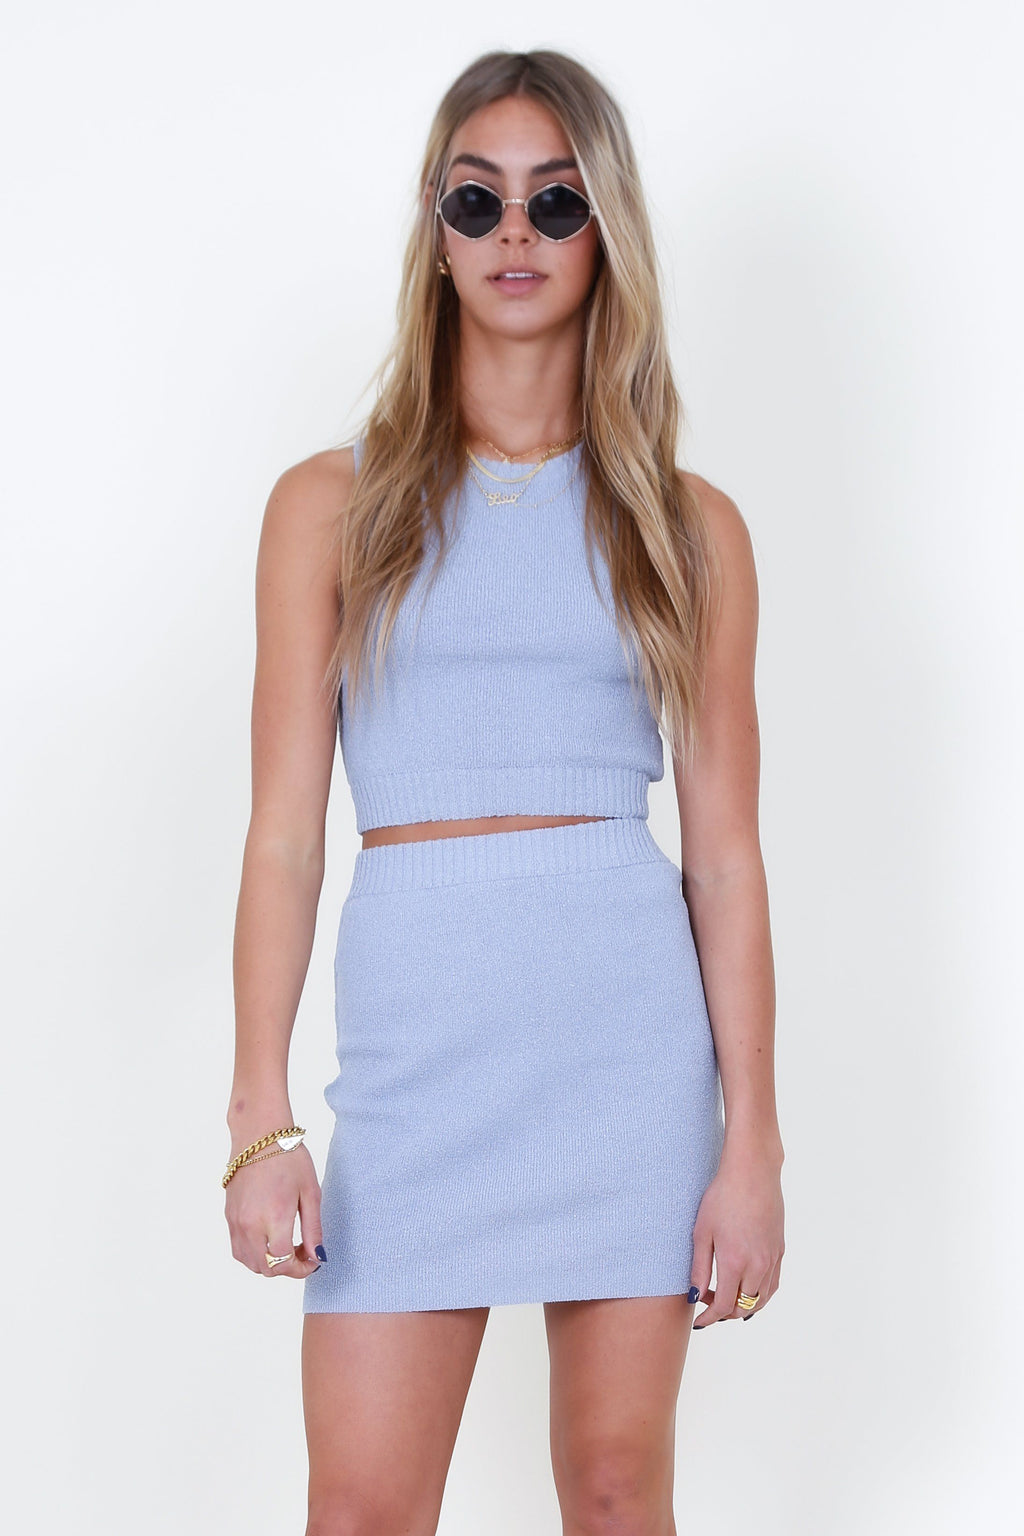 BEC + BRIDGE | Mimi Knit Mini Skirt - Silver Blue